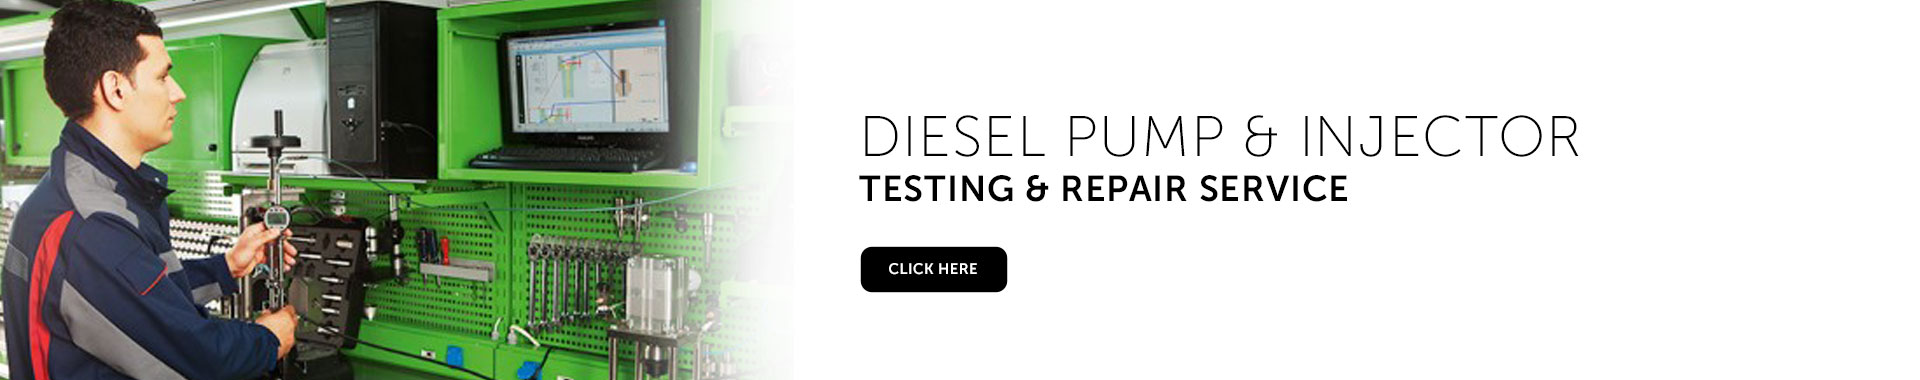 Diesel Engineering Services Ltd – Diesel pump and injector test and